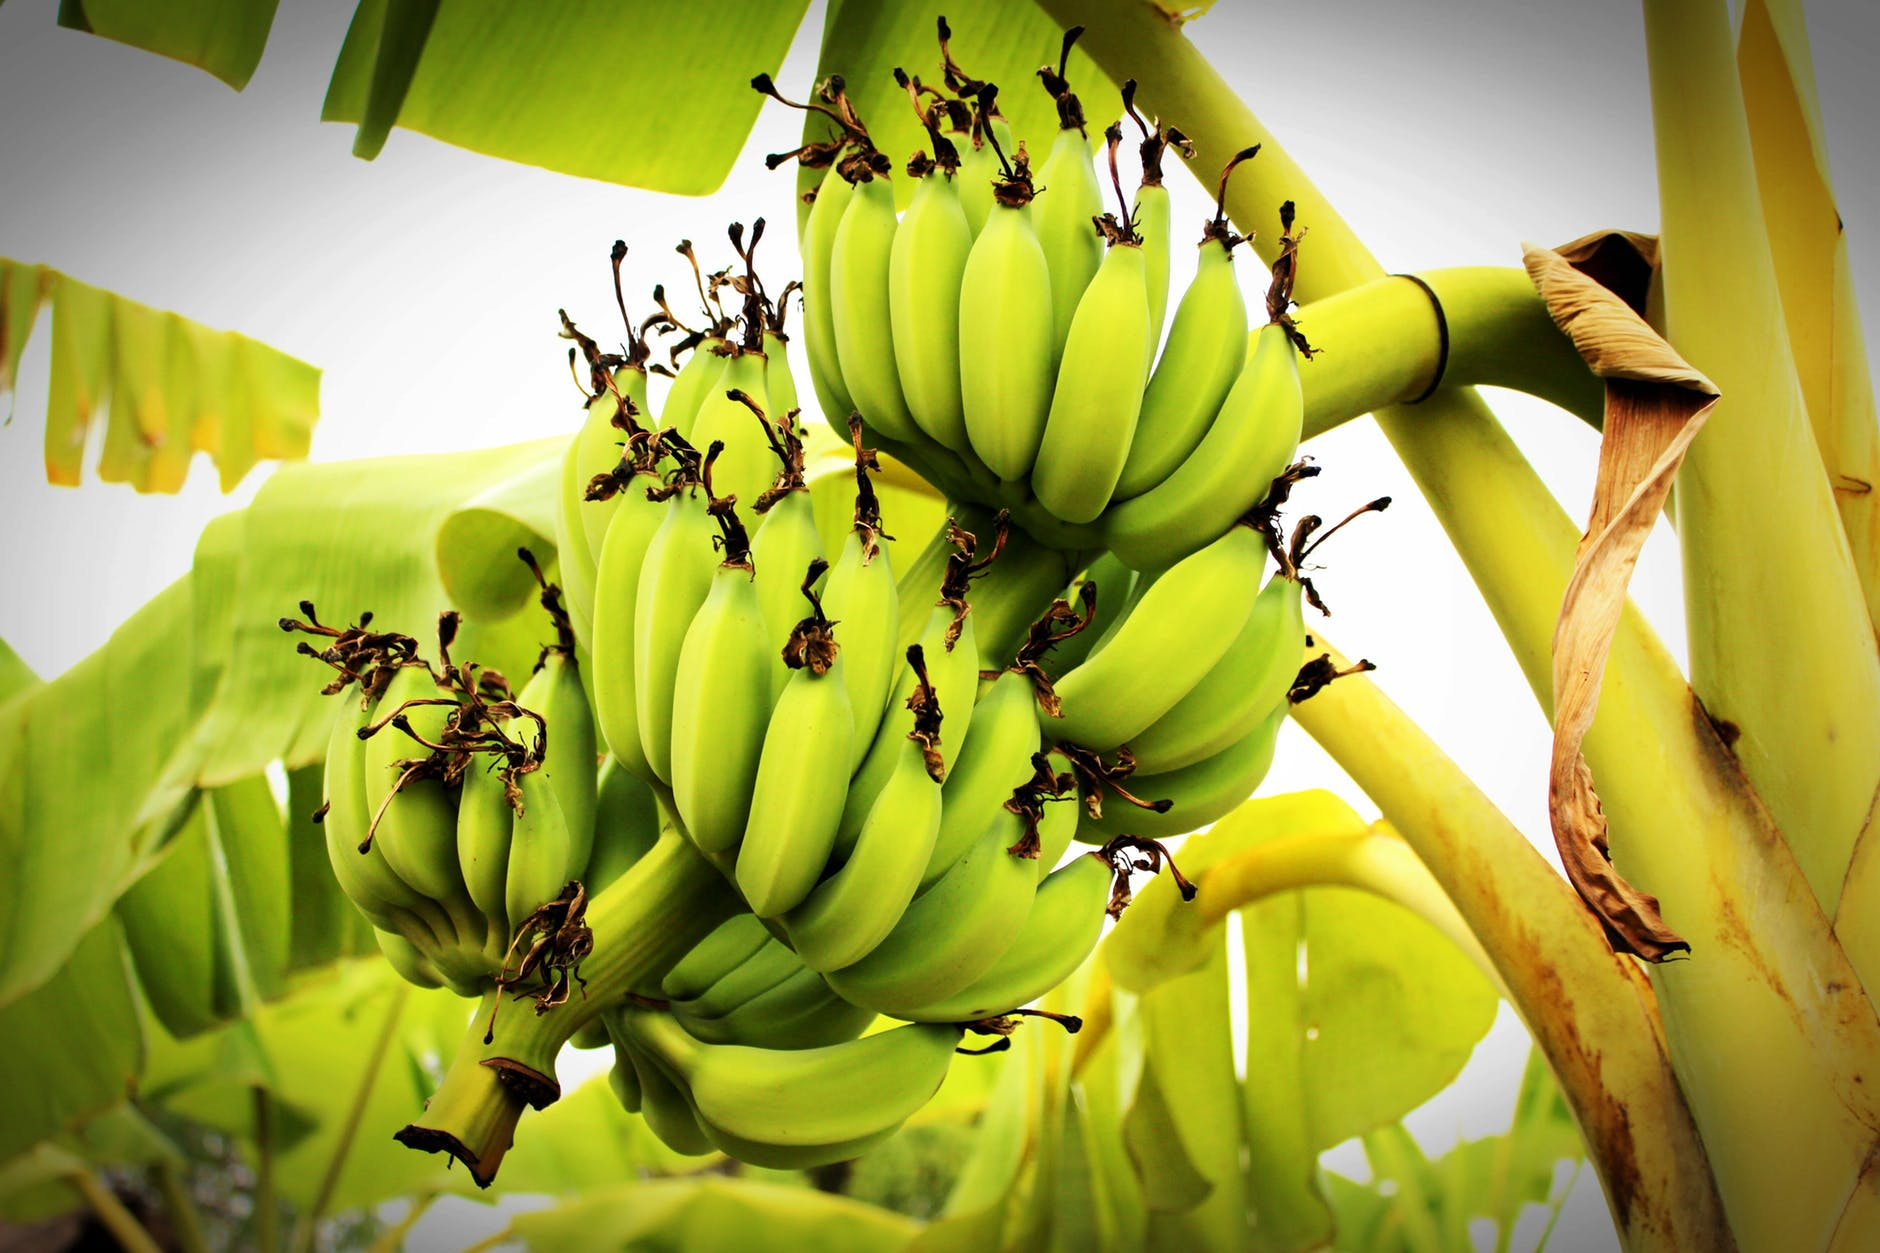 Banana, amazon rainforest plants